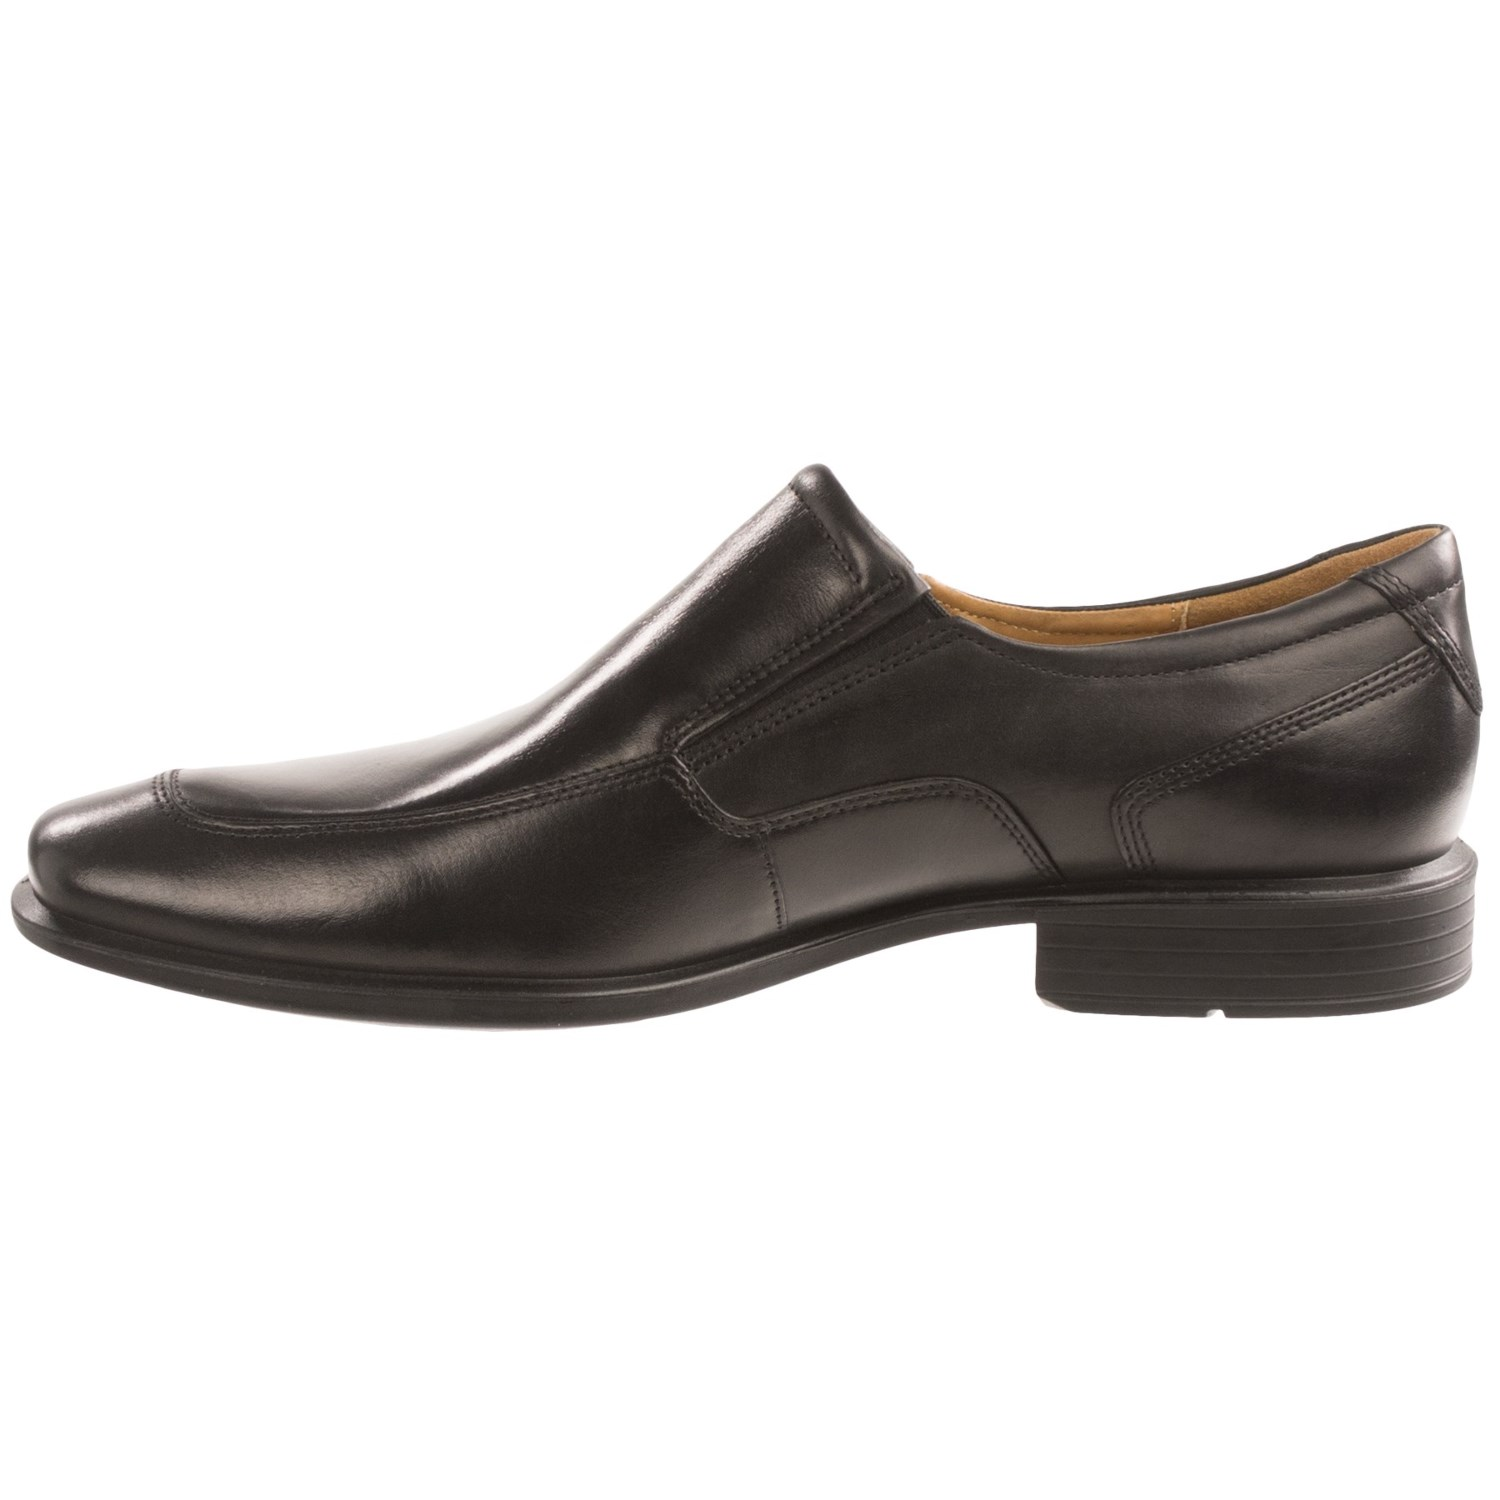 Ecco Shoes Wide Sizes